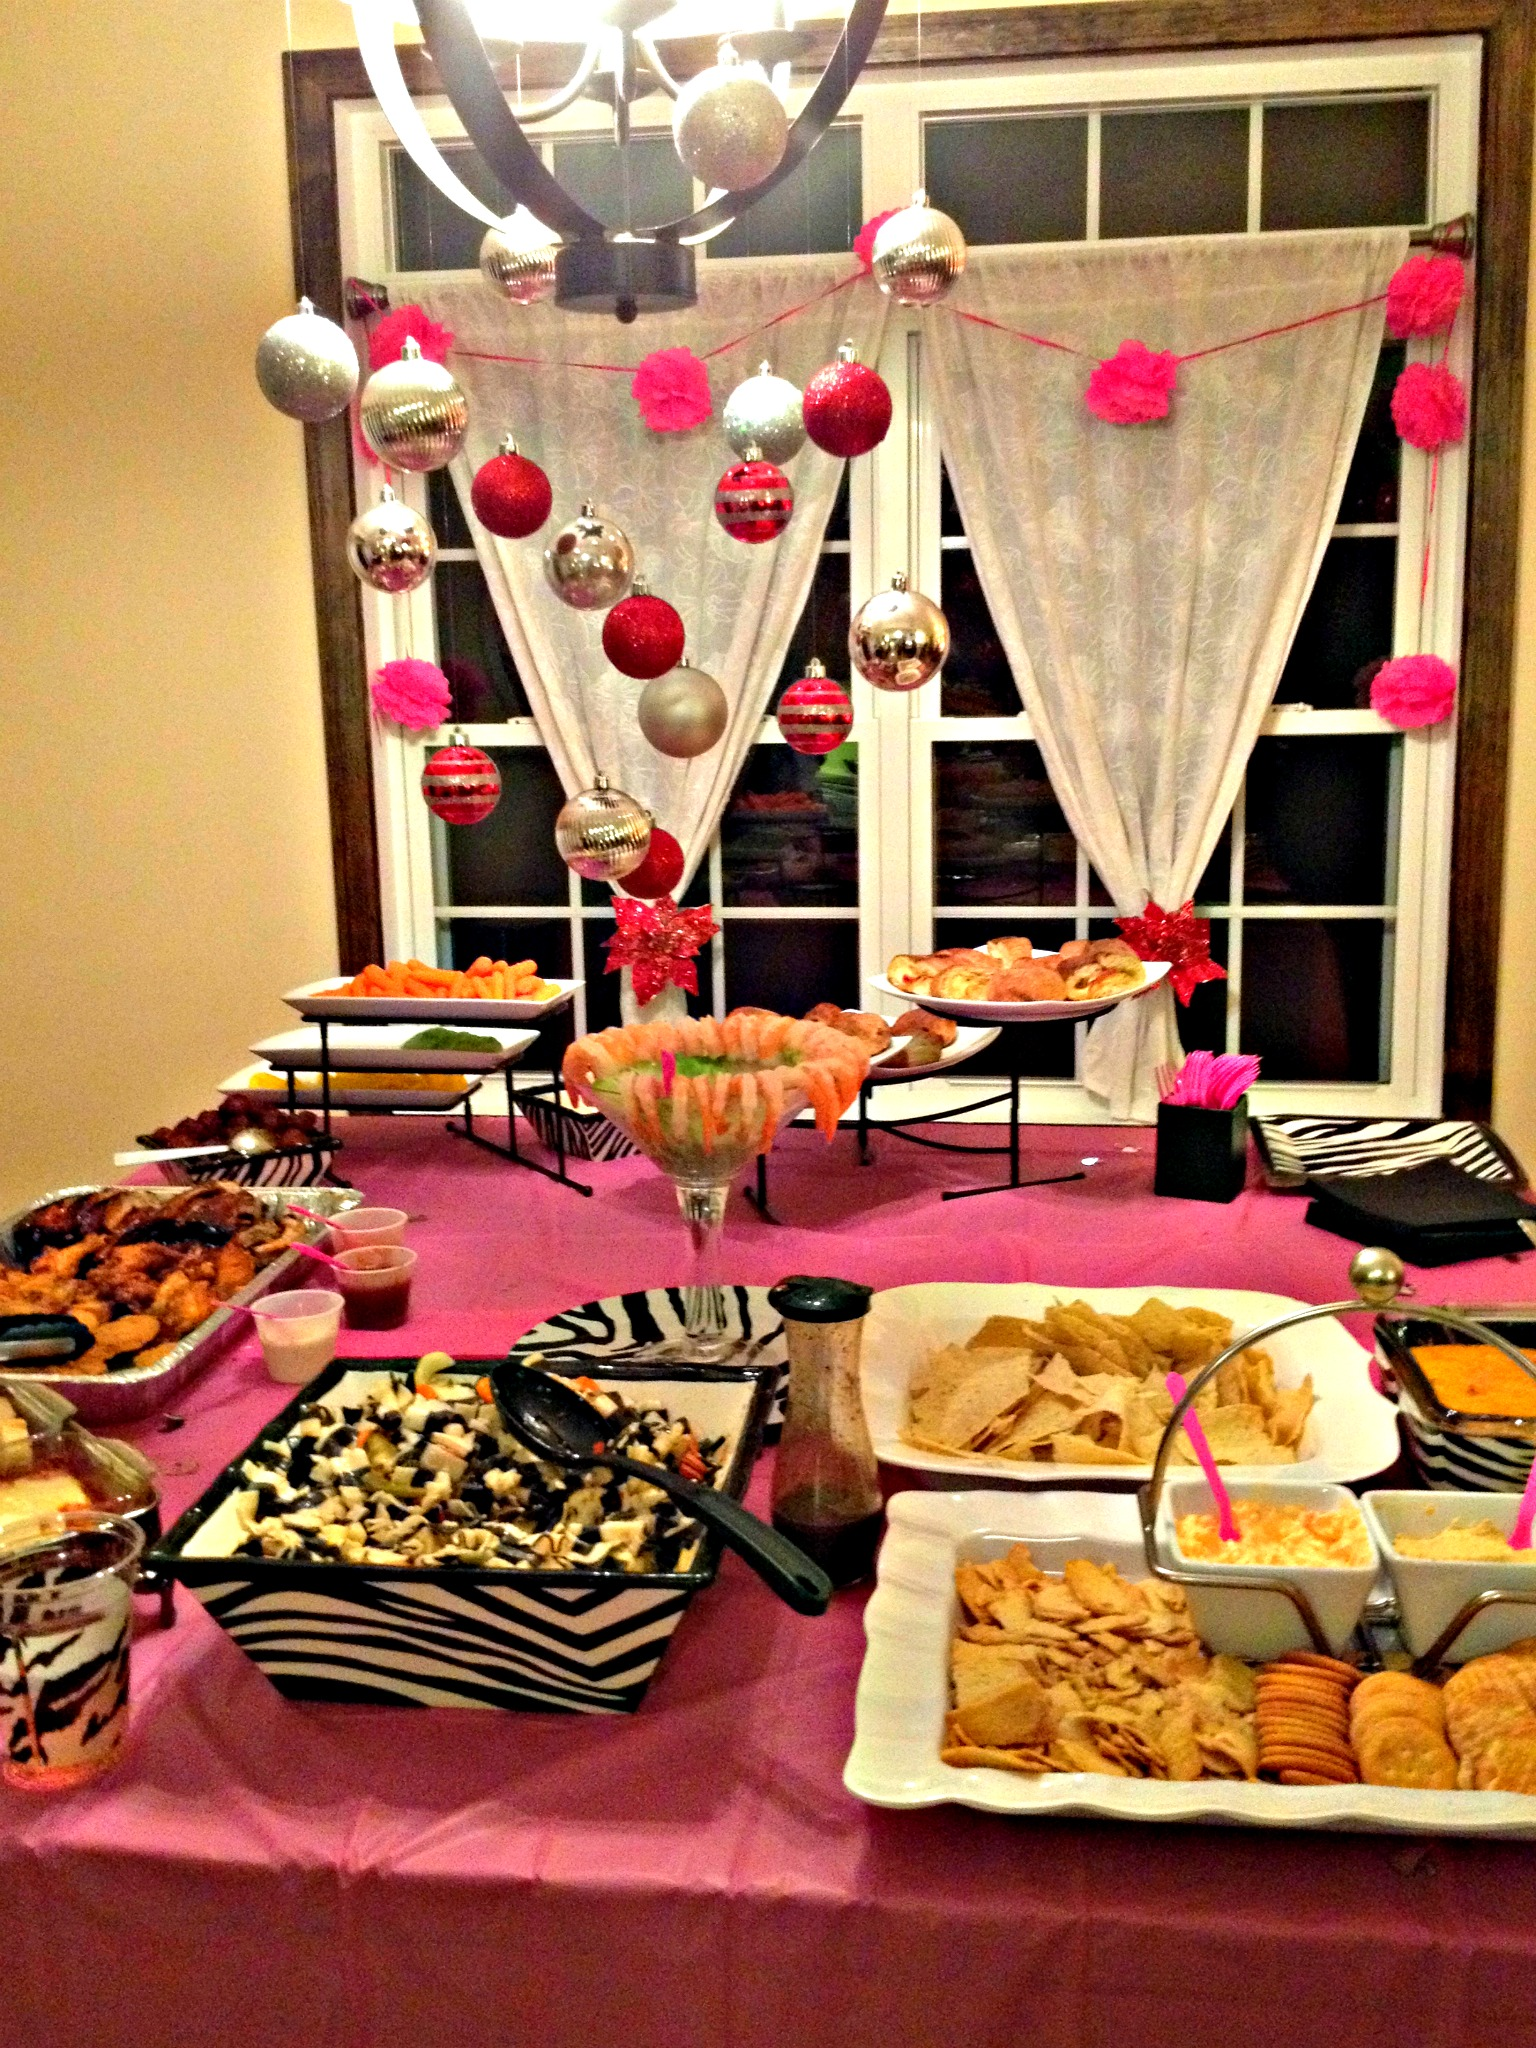 pink and zebra party buffet table